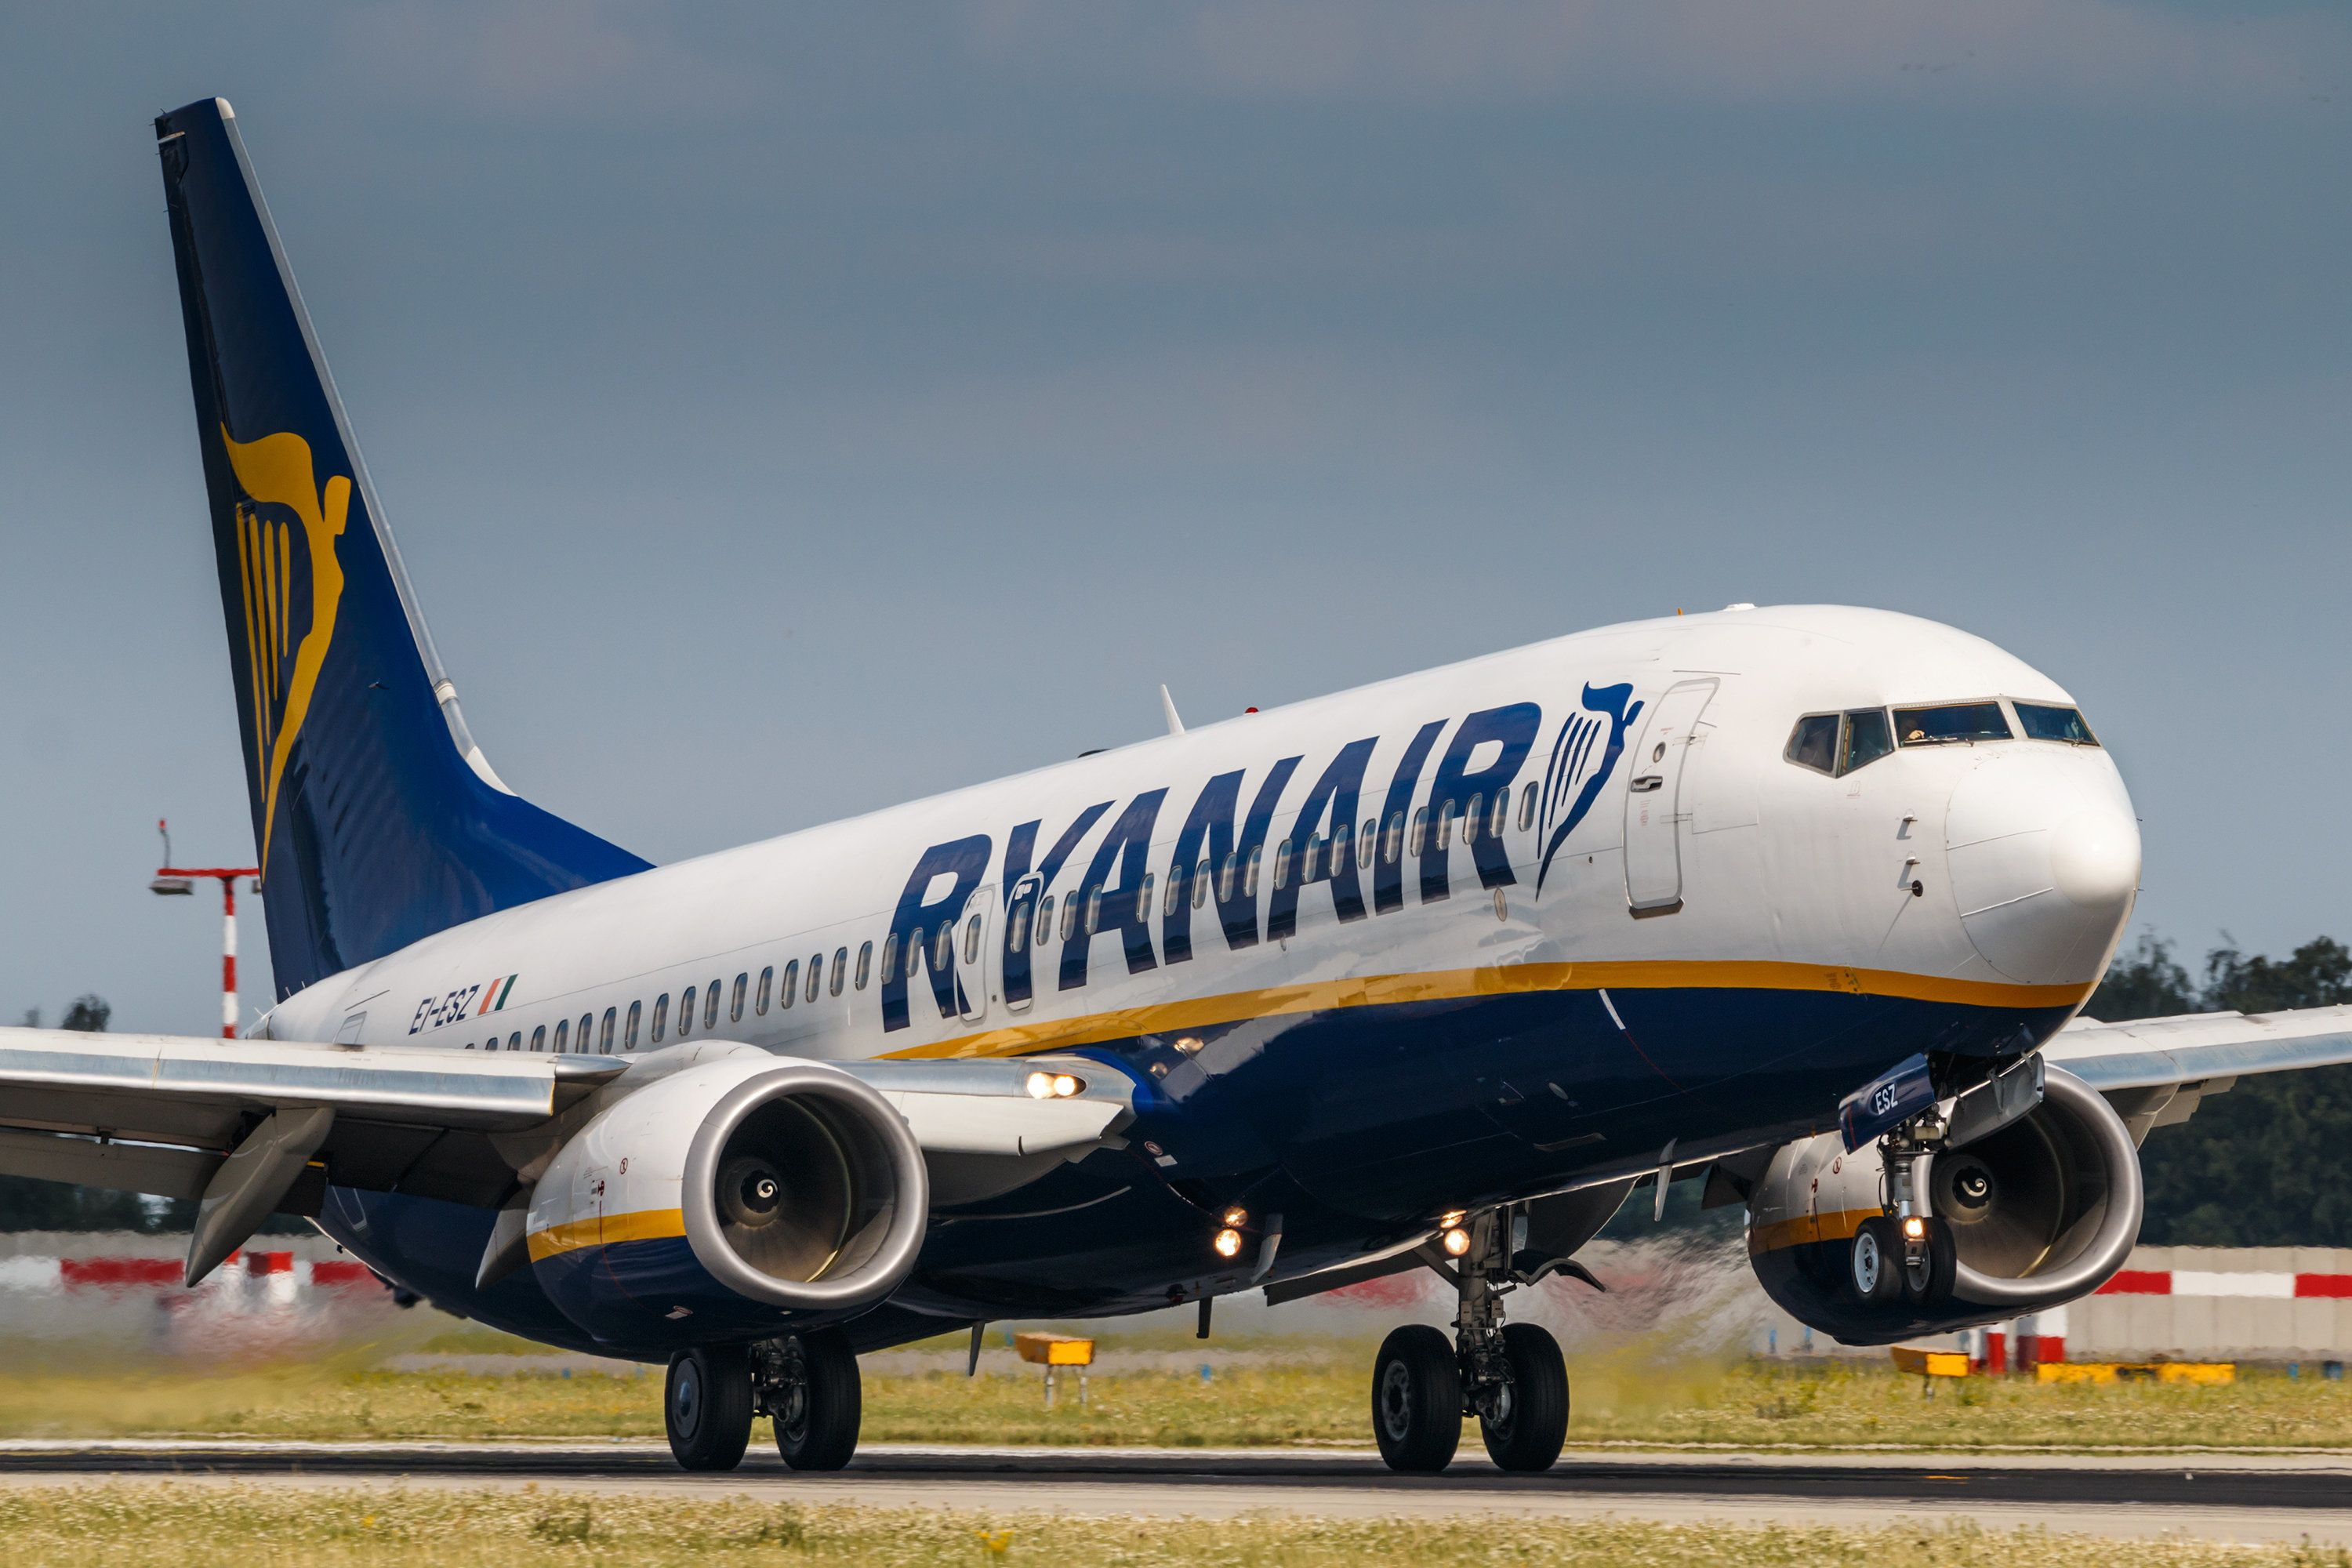 Ryanair pilots have rejected the airline's offer of a